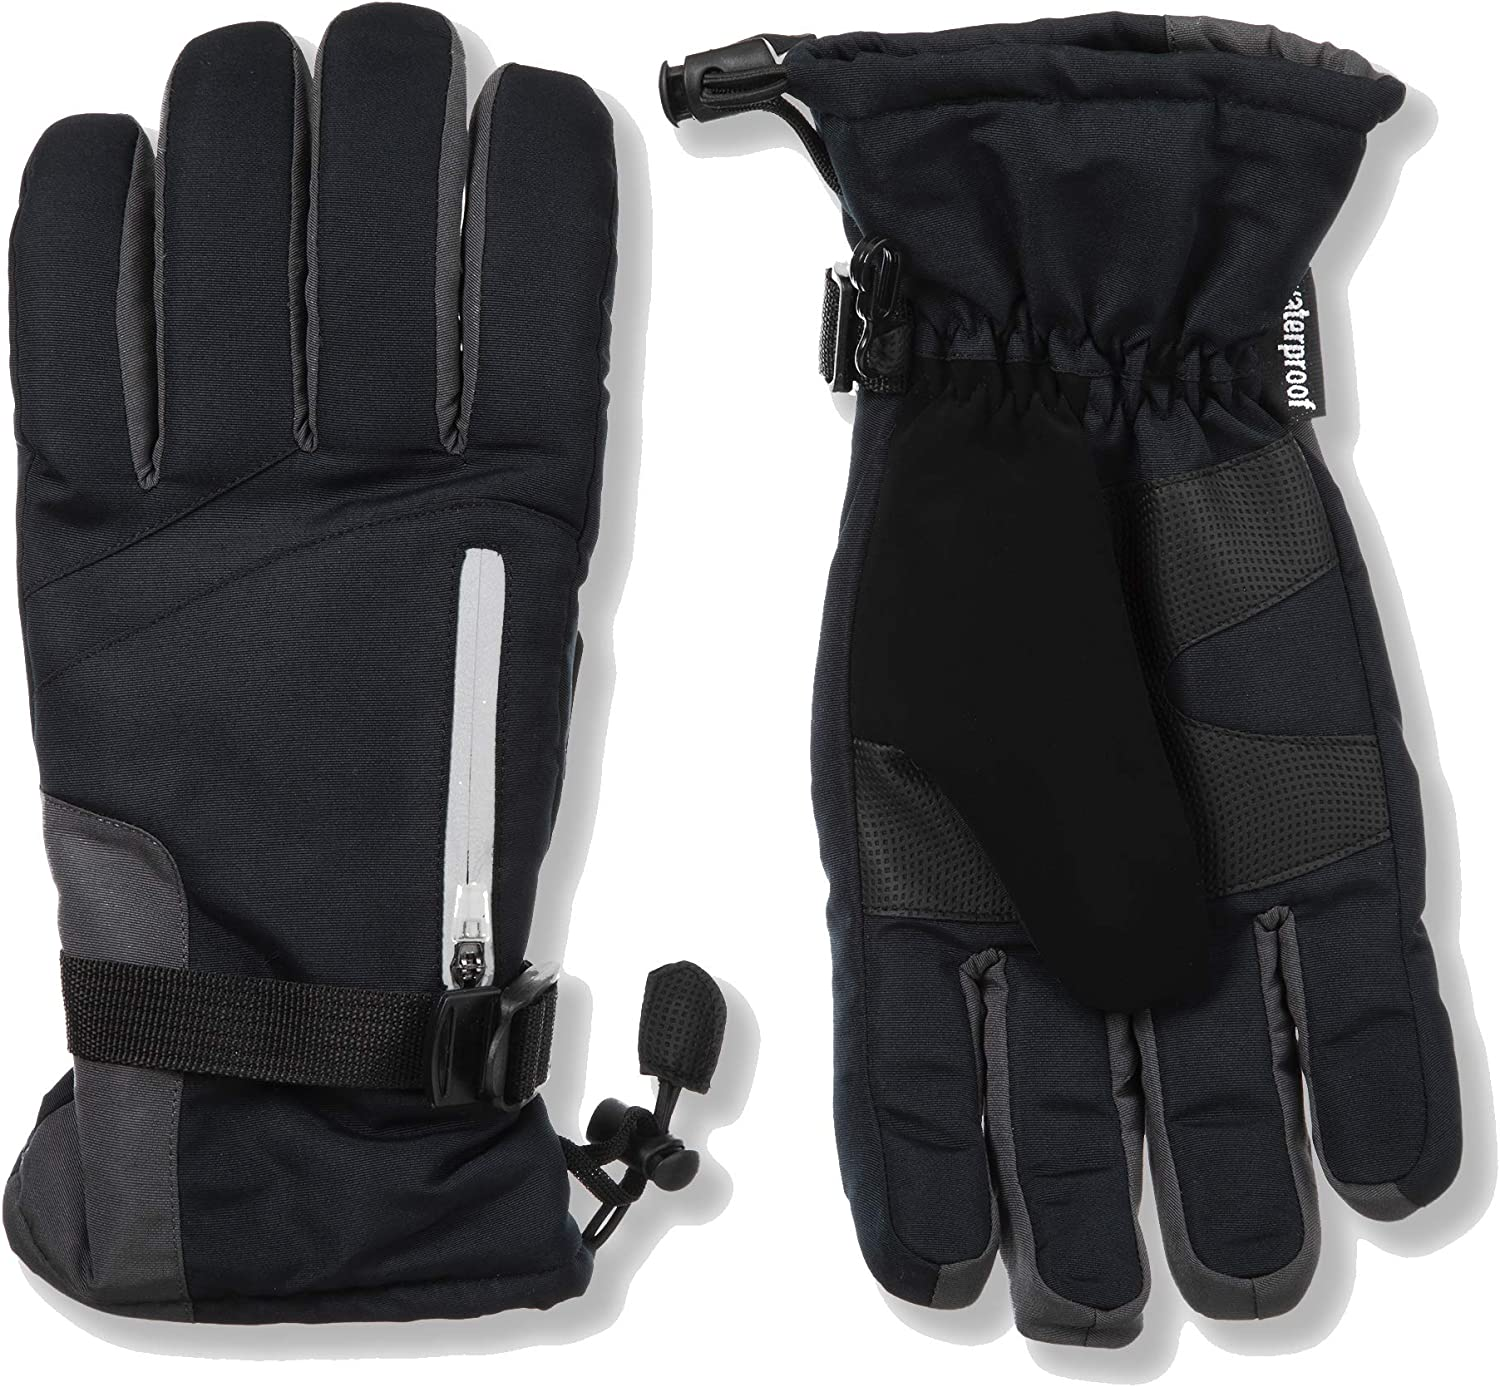 C9 Champion Men's Adjustable Windproof Waterproof Snowboarding And Ski Glove With Reflective, Nose Wipe, and Zippered Pockets